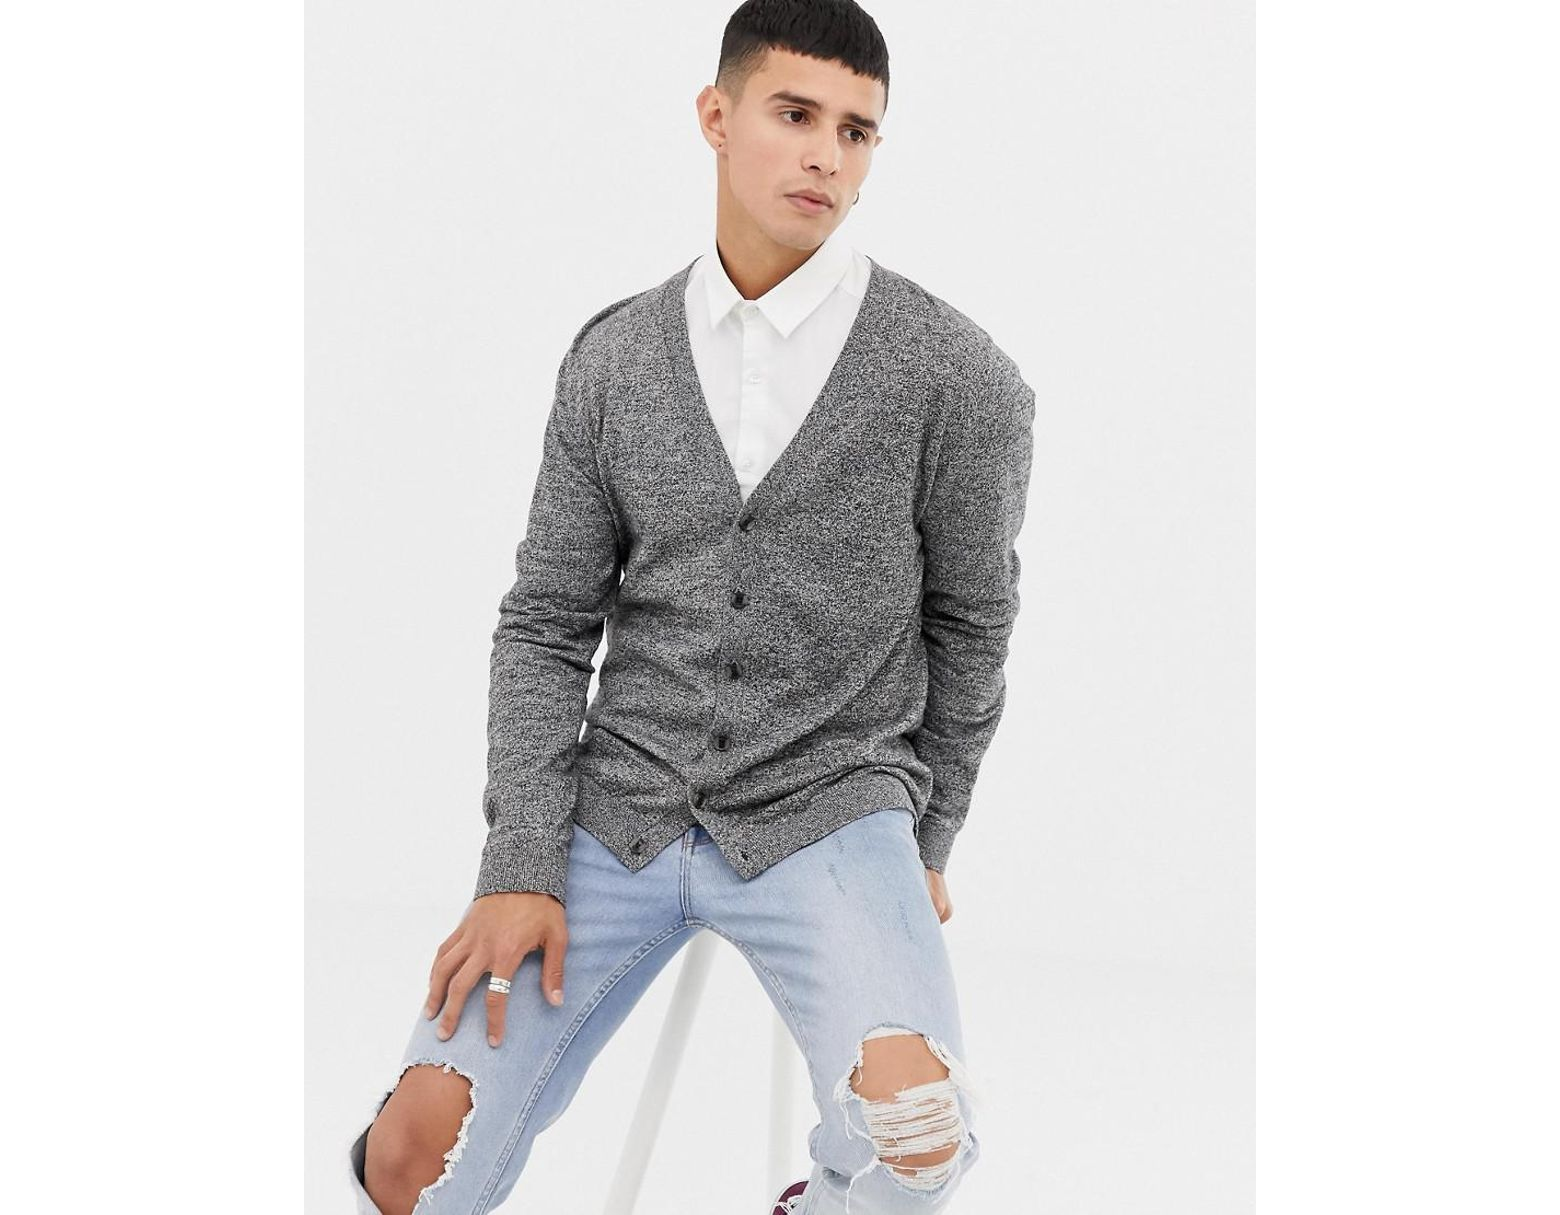 c3e89f1a82c Lyst - ASOS Knitted Cotton Cardigan In Gray Twist in Black for Men